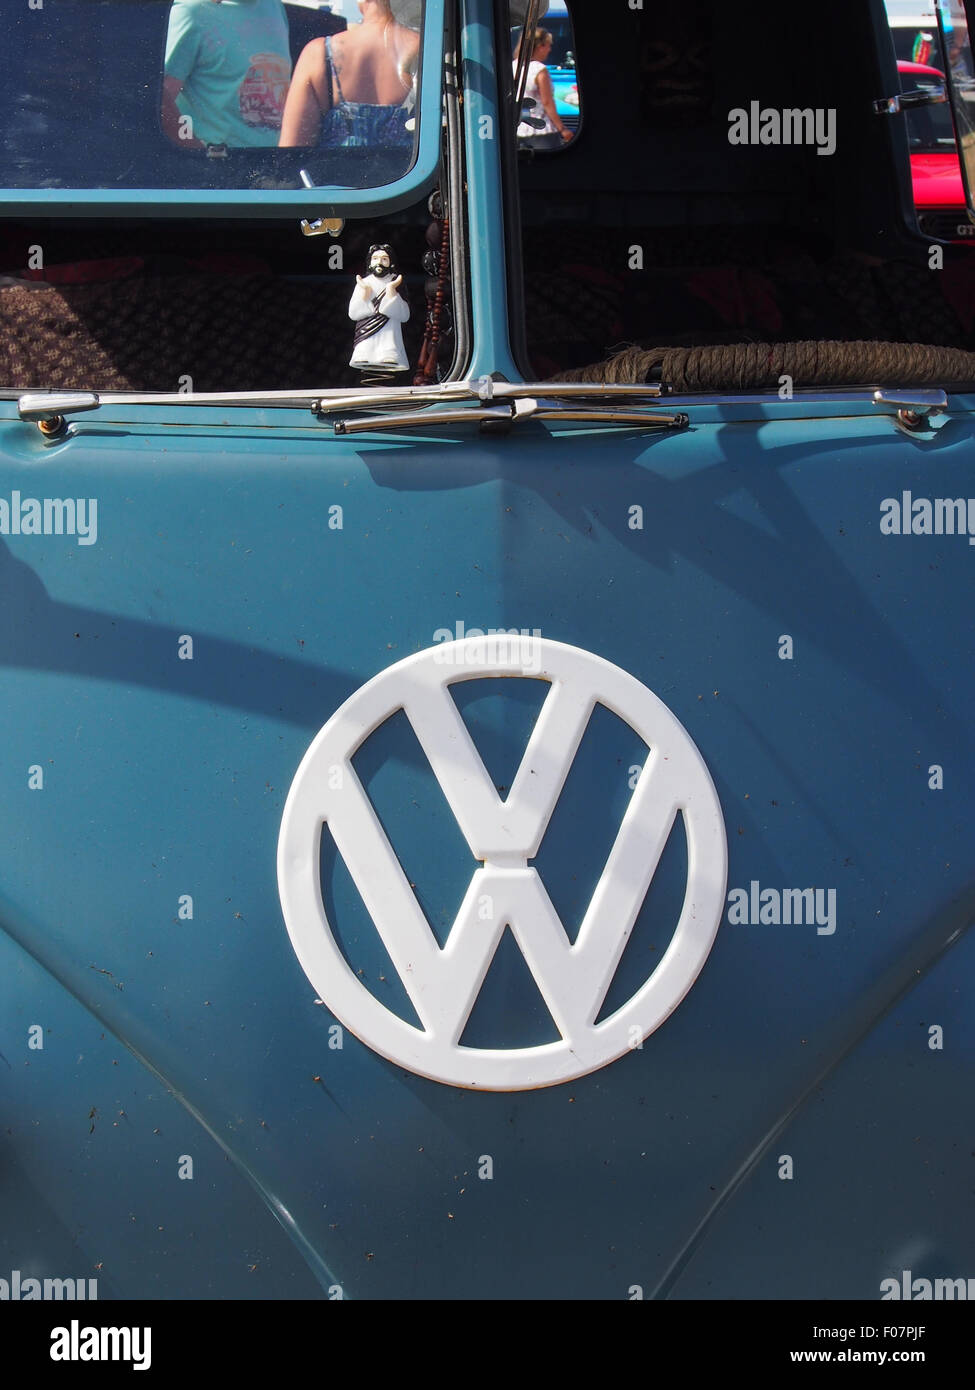 A VW emblem on the front of a classic VW campervan. The windows are open with a buddy Christ in the window - Stock Image